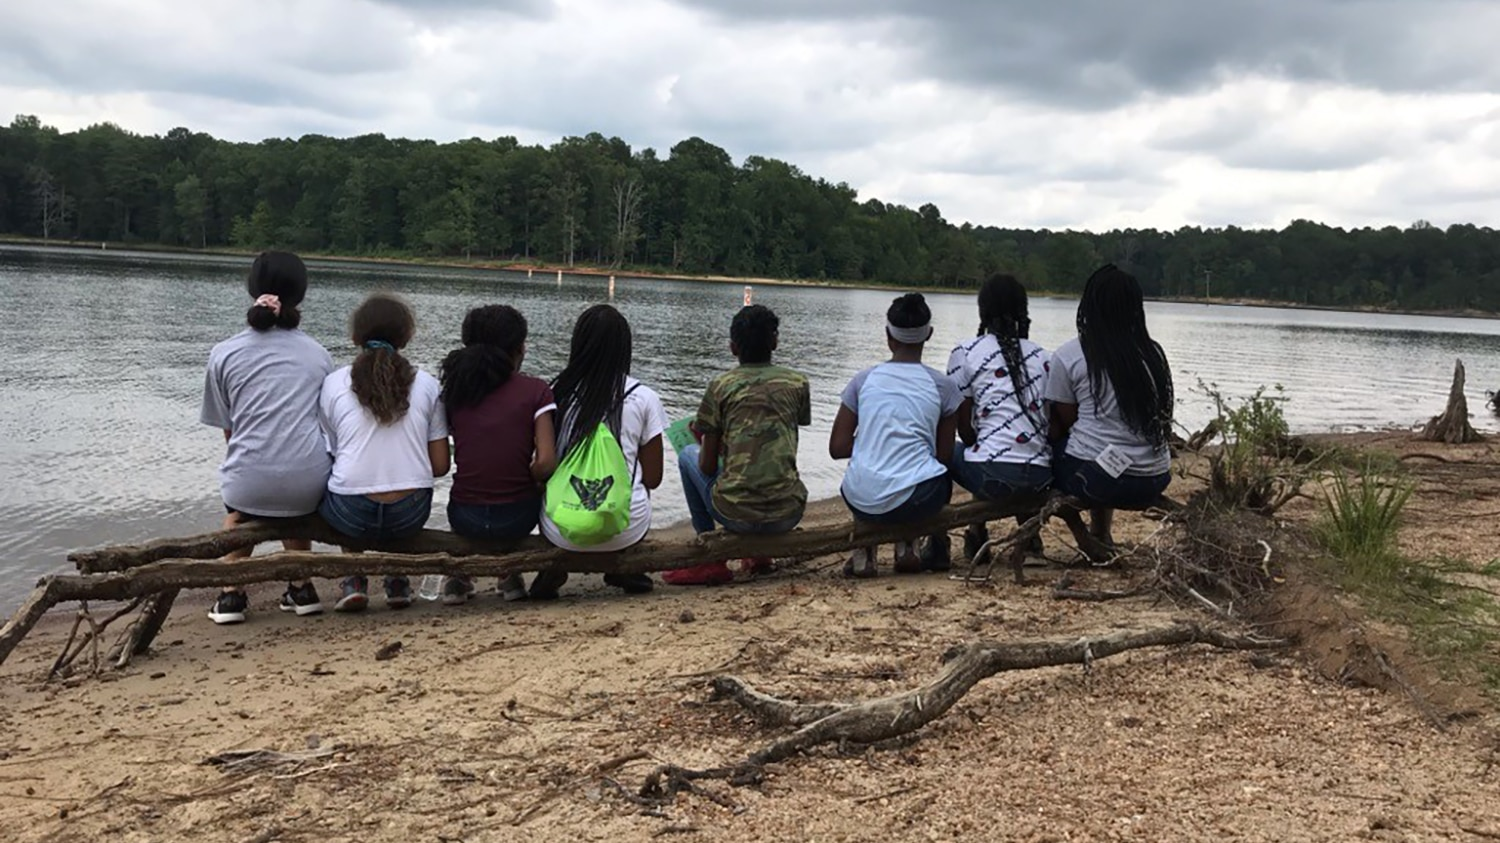 A group of middle school students sit on a log and look out onto a lake.